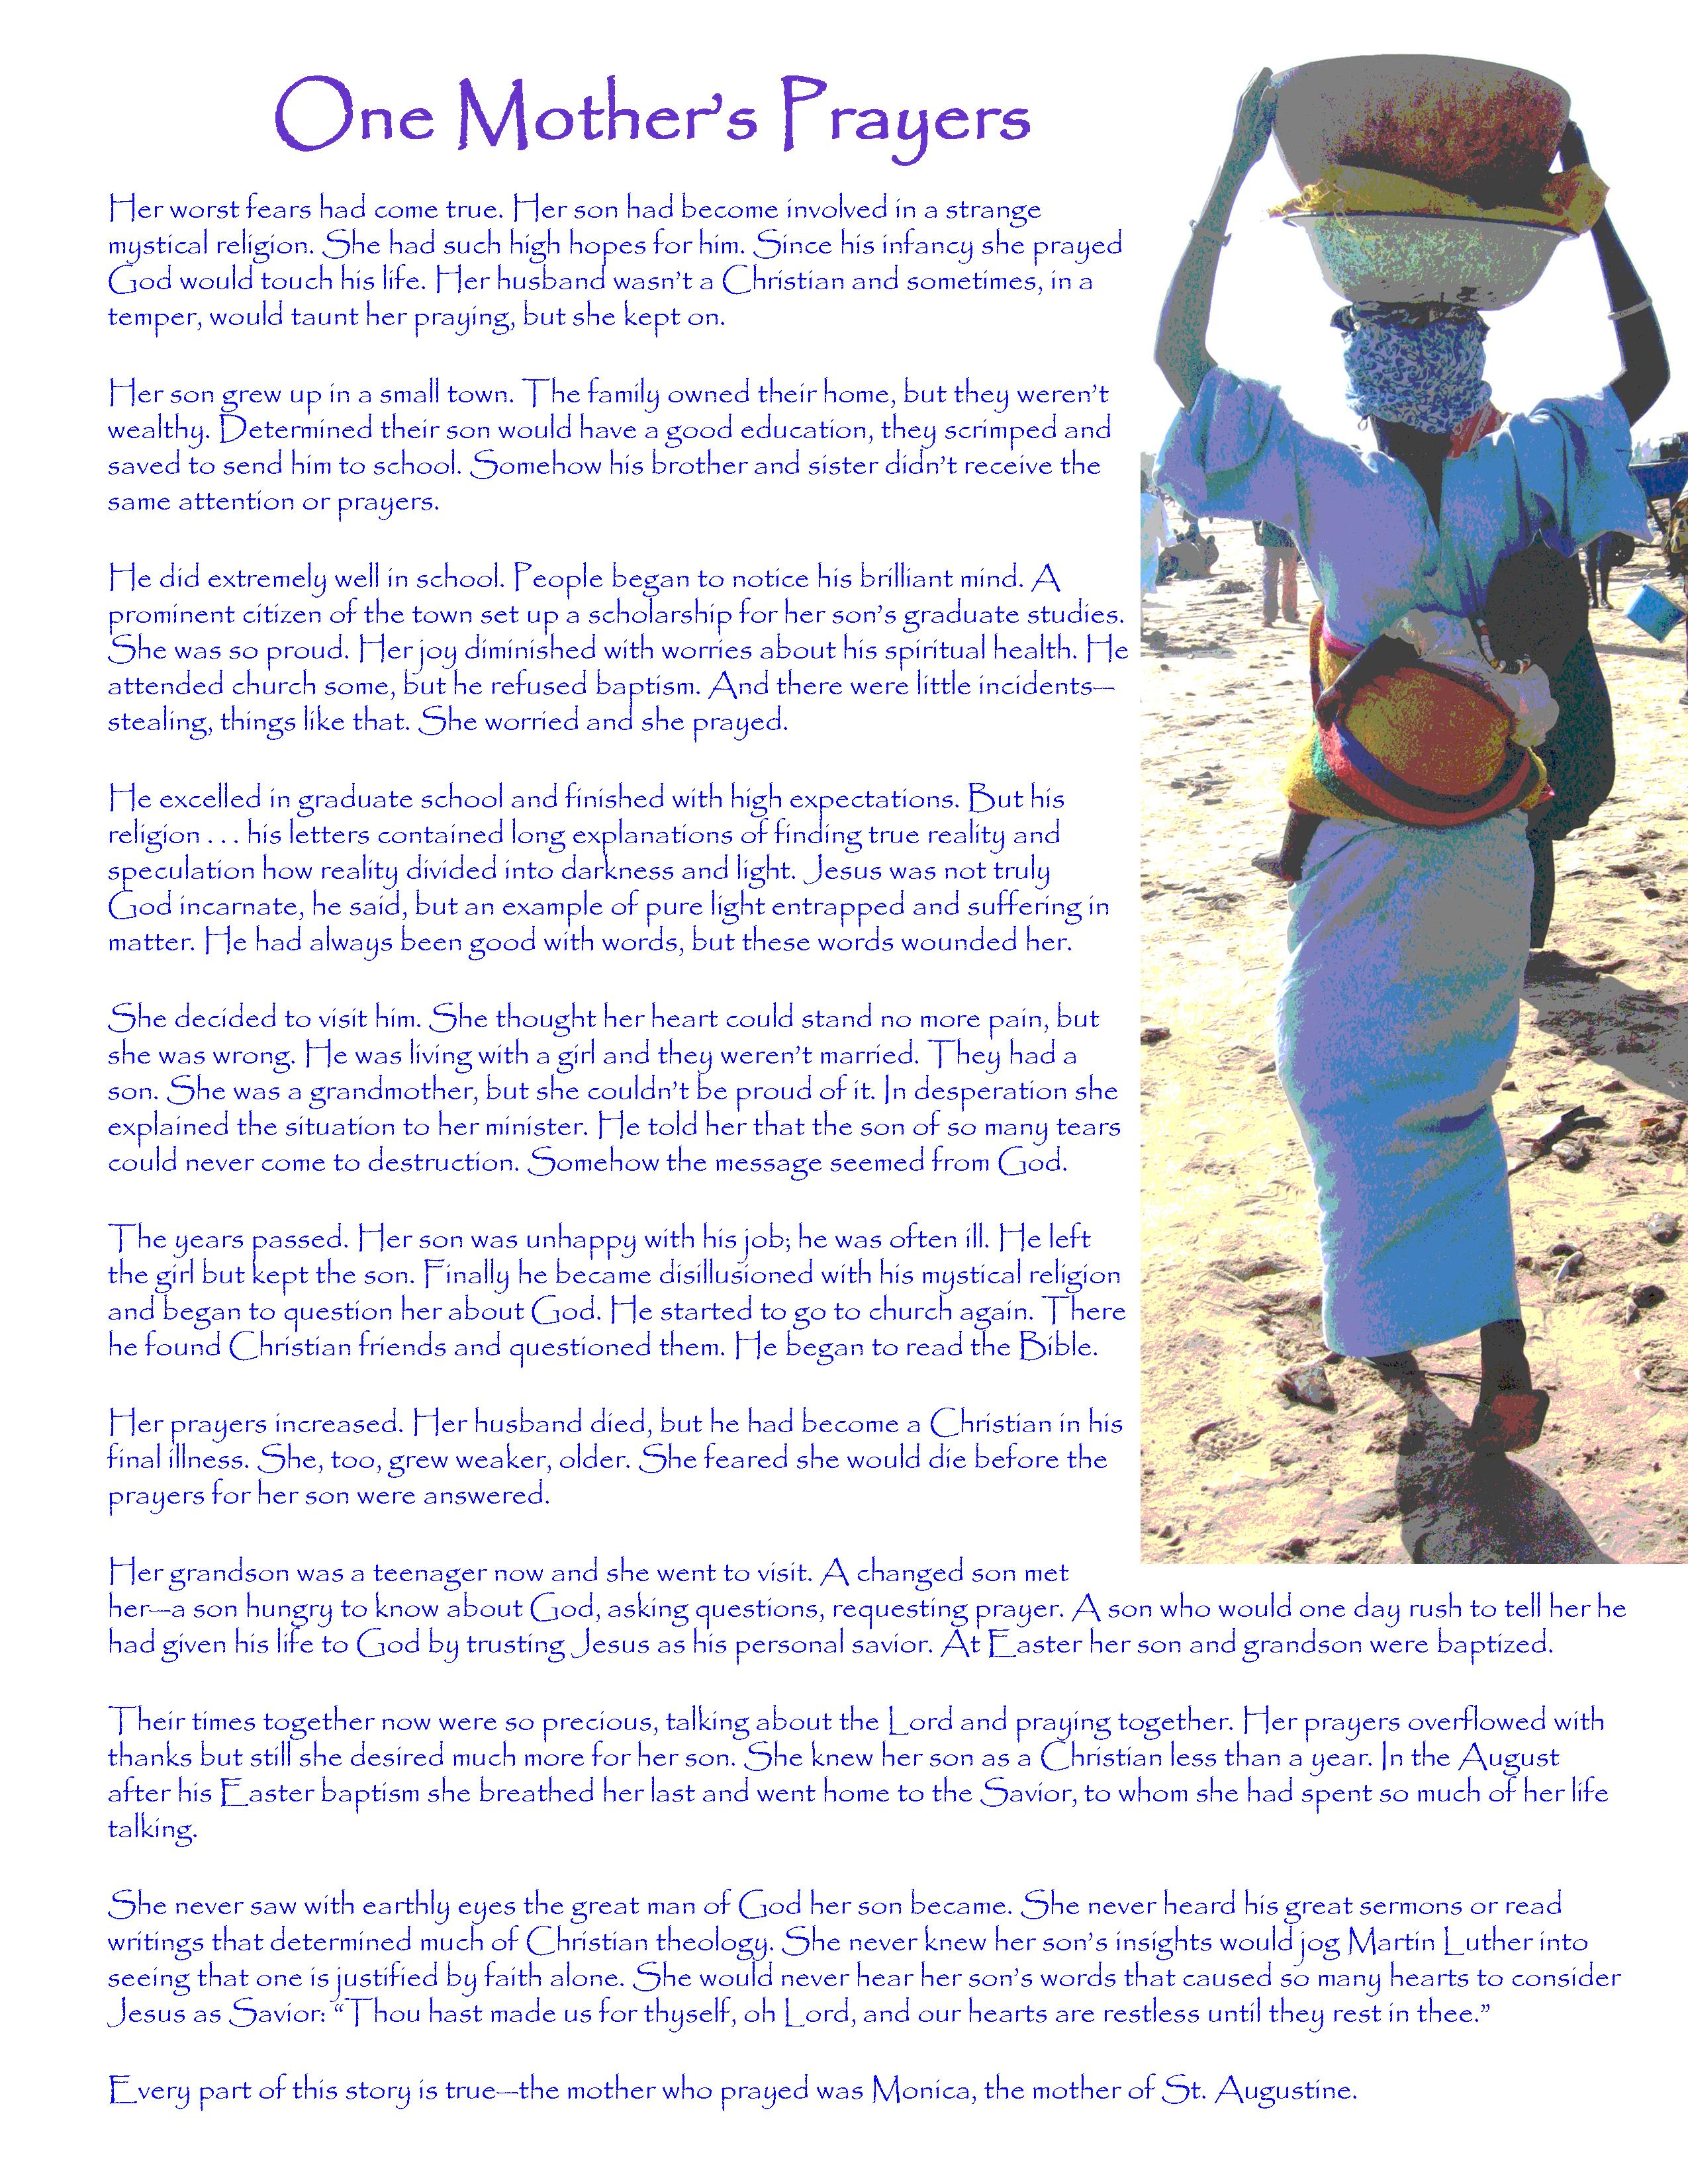 One Mother's Prayer, a free and inspiring bulletin insert